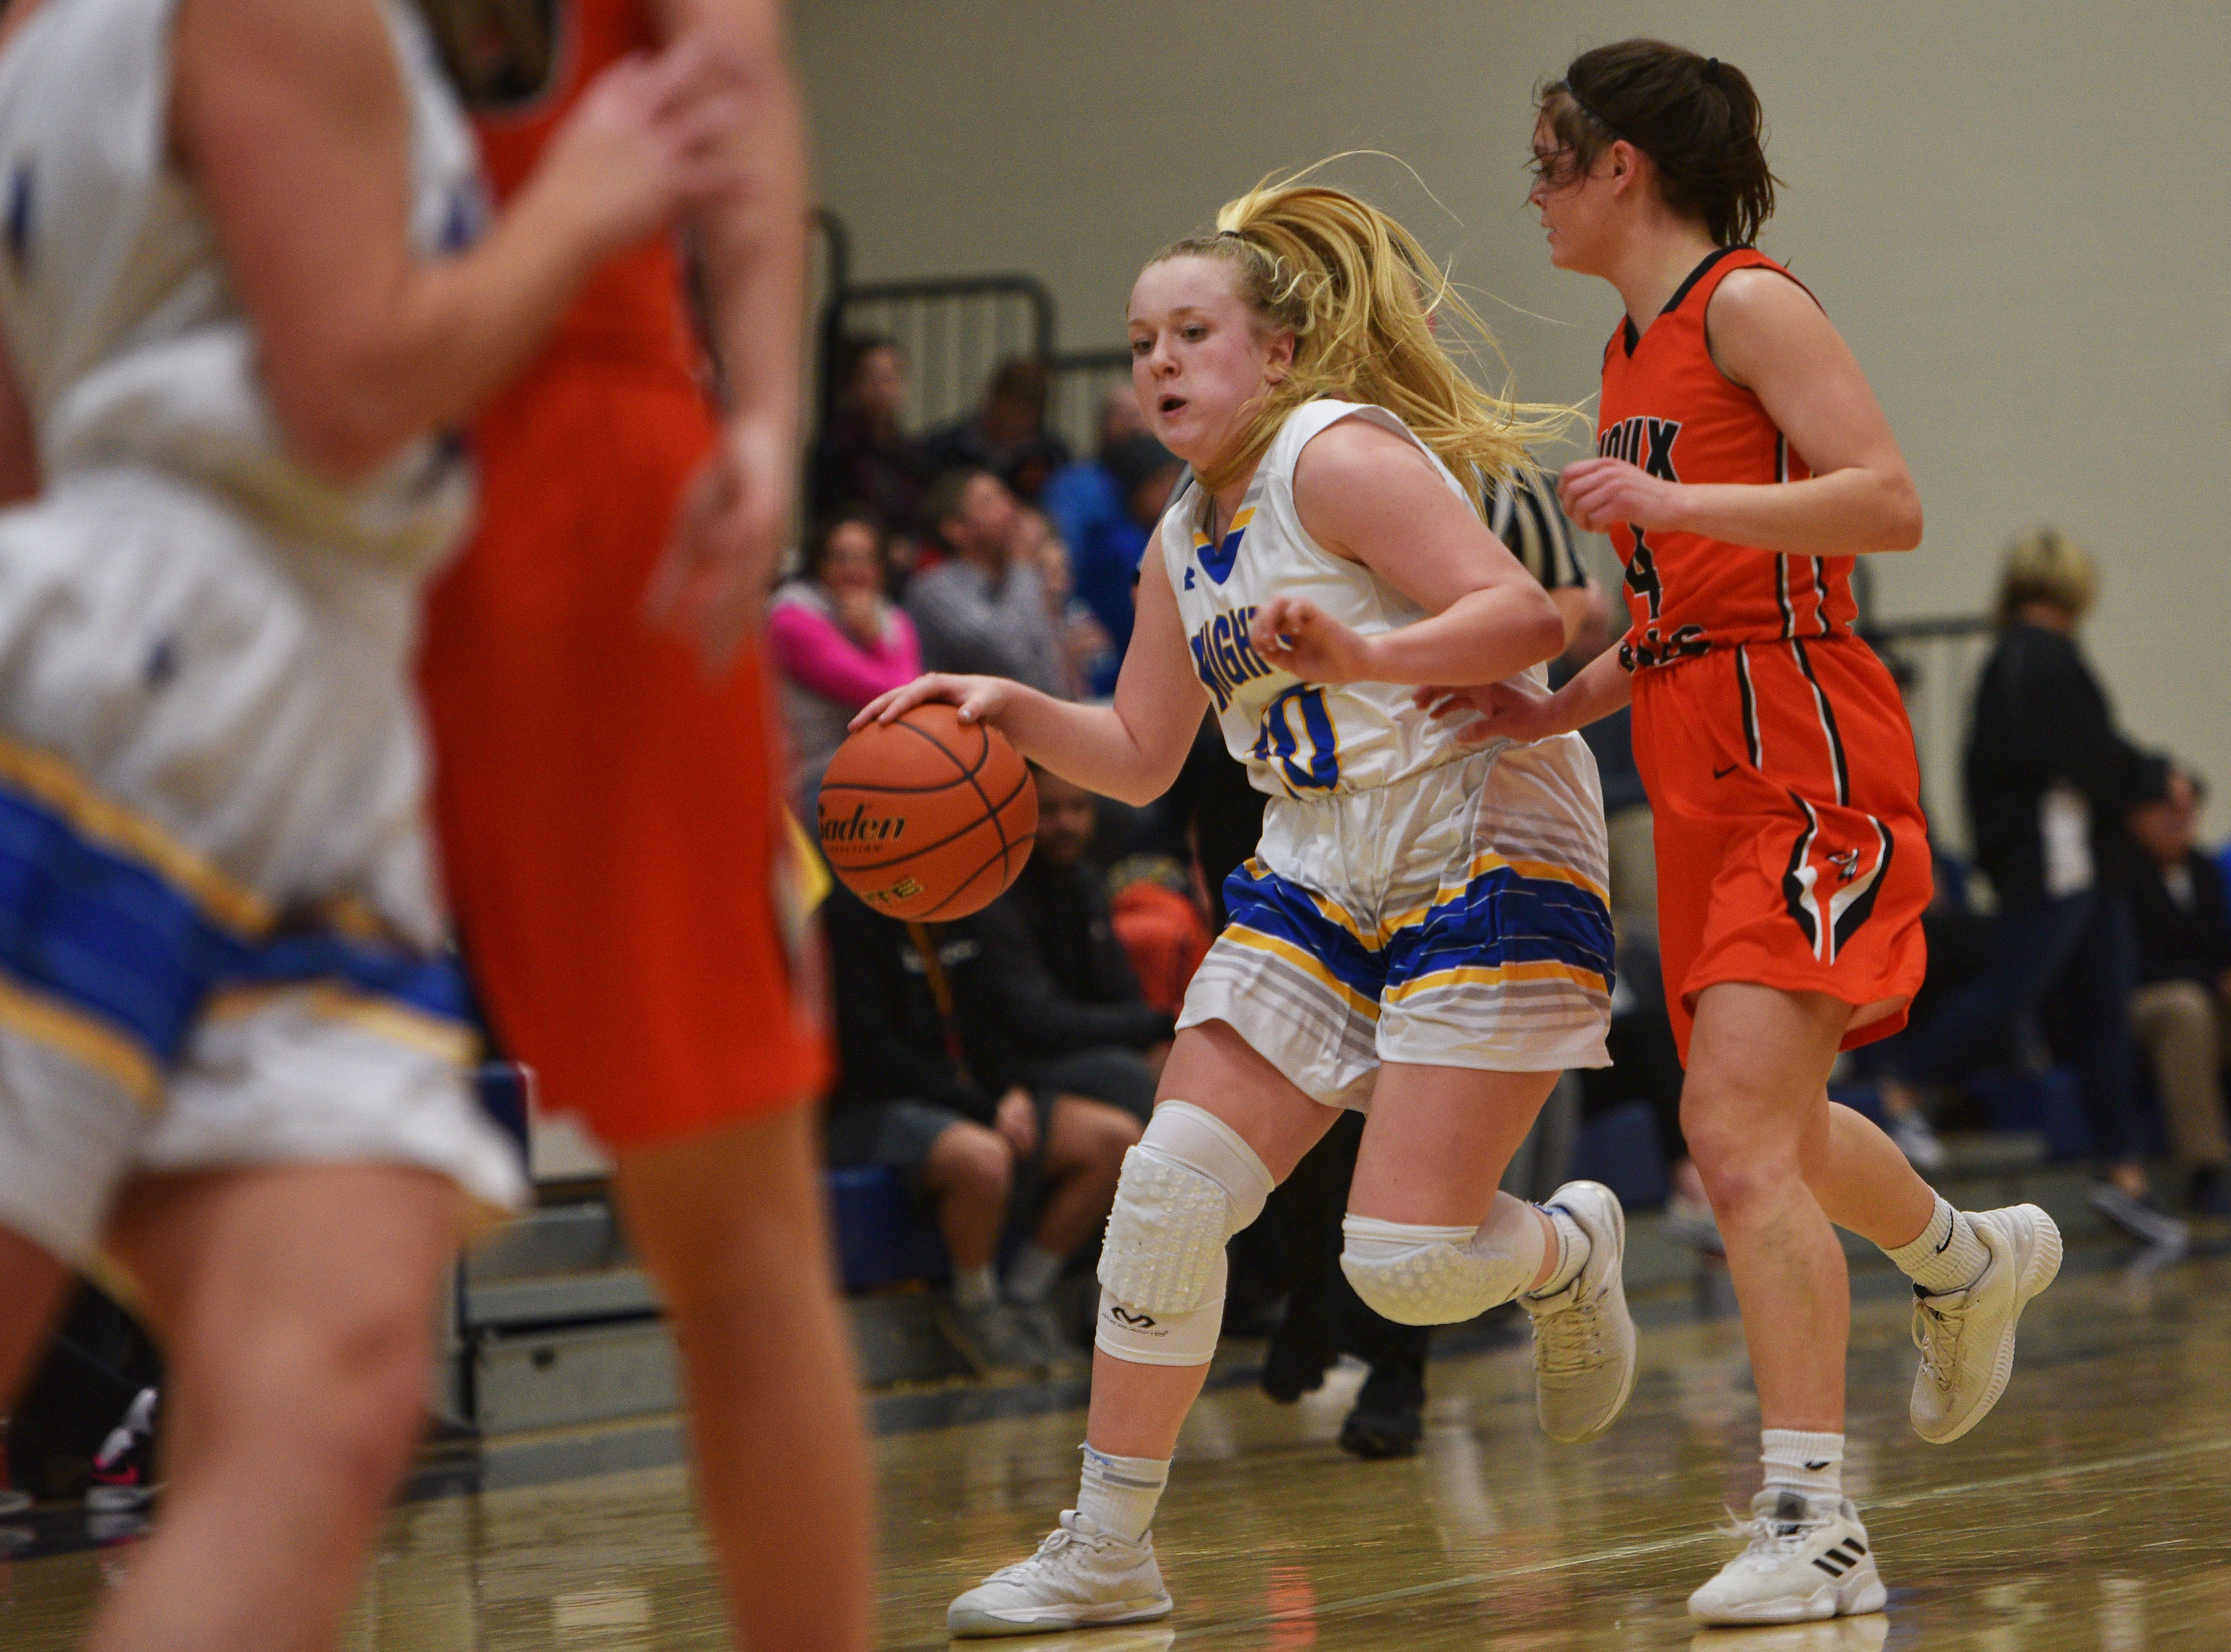 O'Gorman's Carly Kunkel goes against Washington defense during the game Thursday, Jan. 10, at O'Gorman in Sioux Falls.